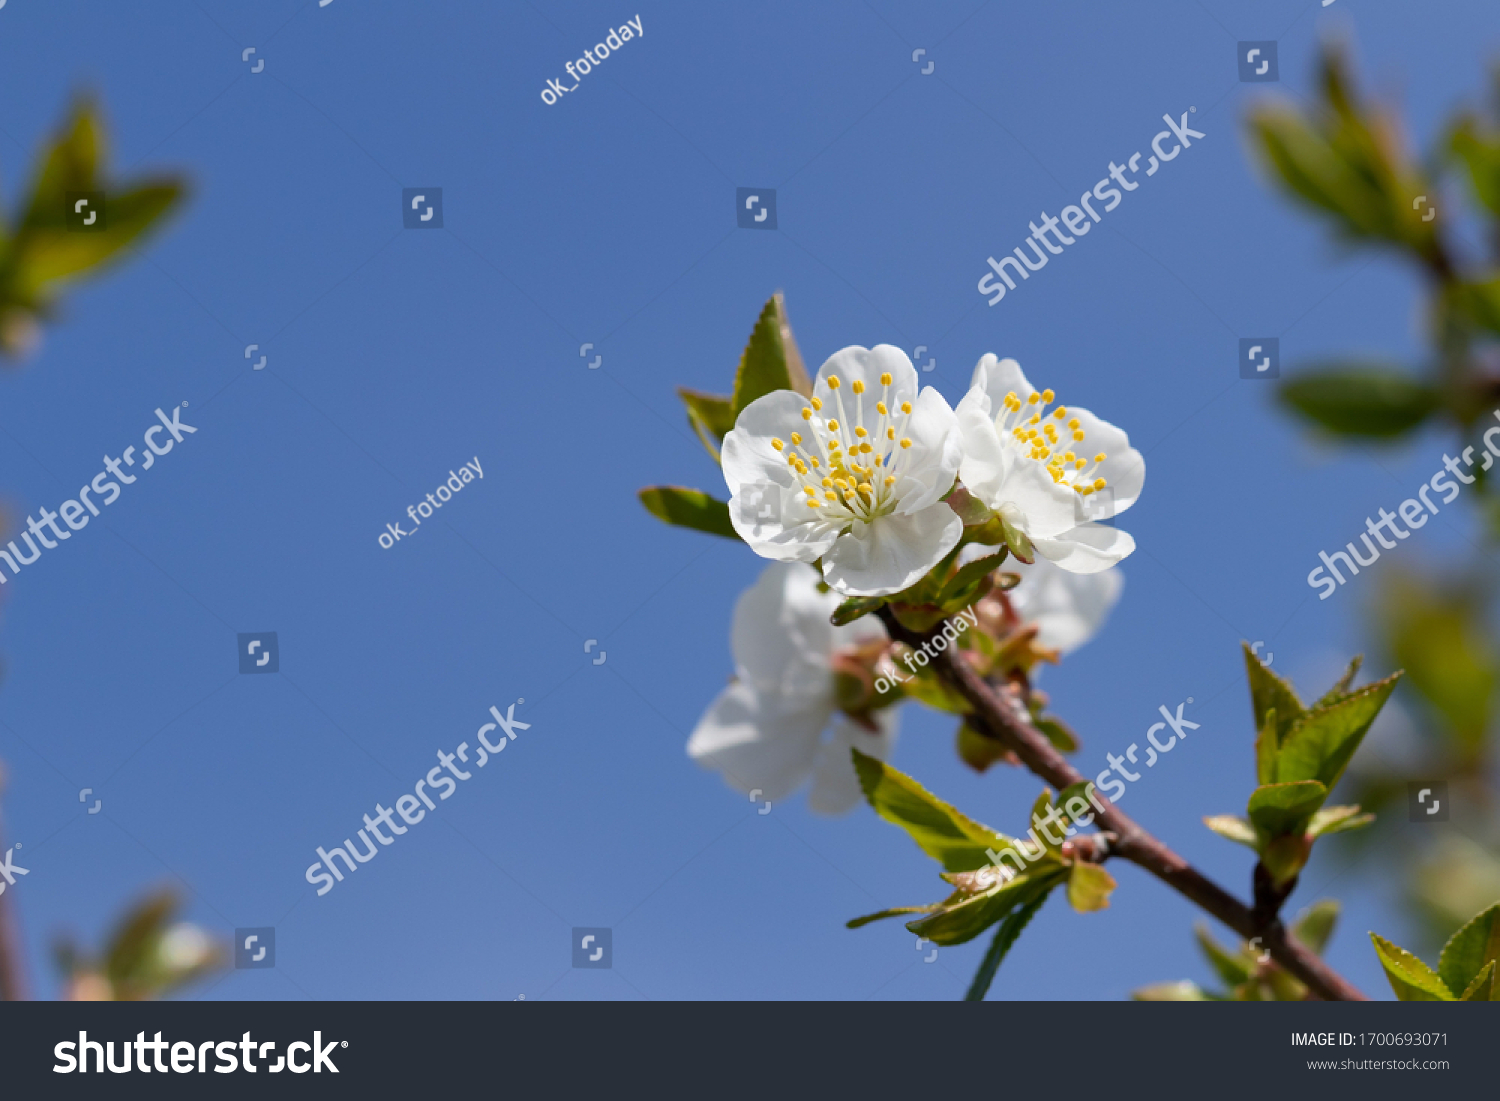 stock-photo-white-inflorescence-on-a-che